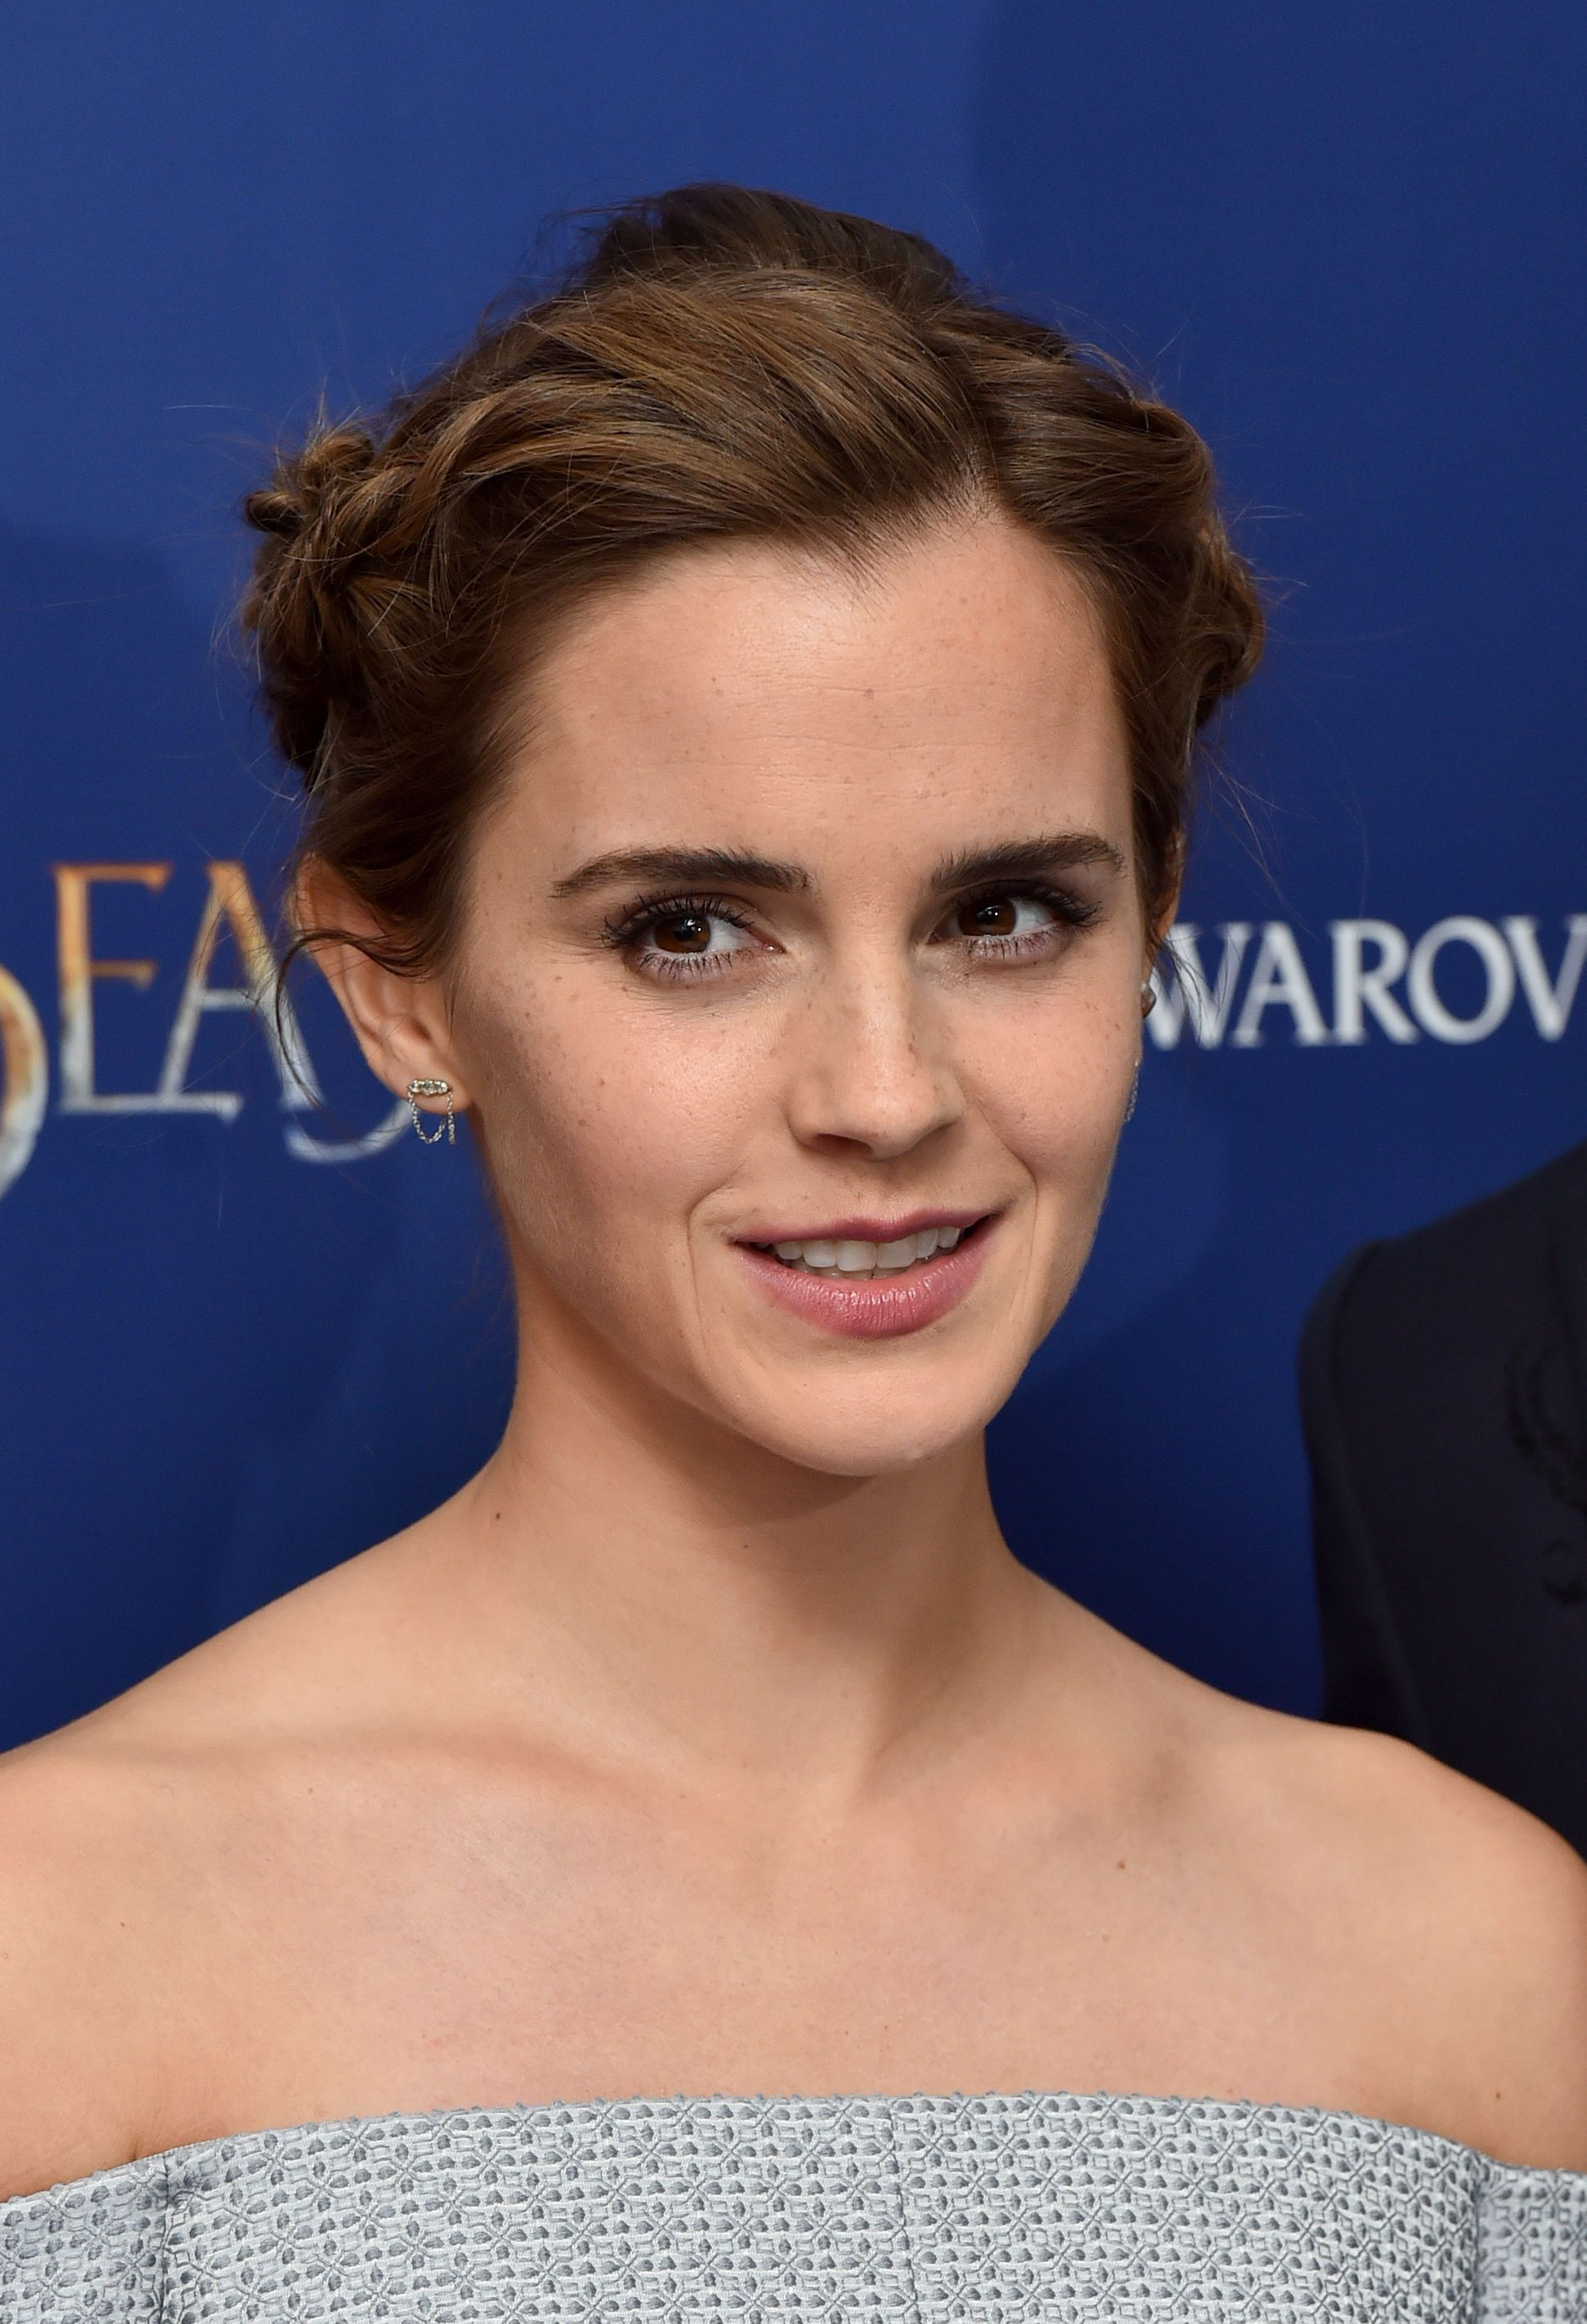 Emma Watson Teams Up With BFI and Bafta To Combat Sexual Harassment In Film